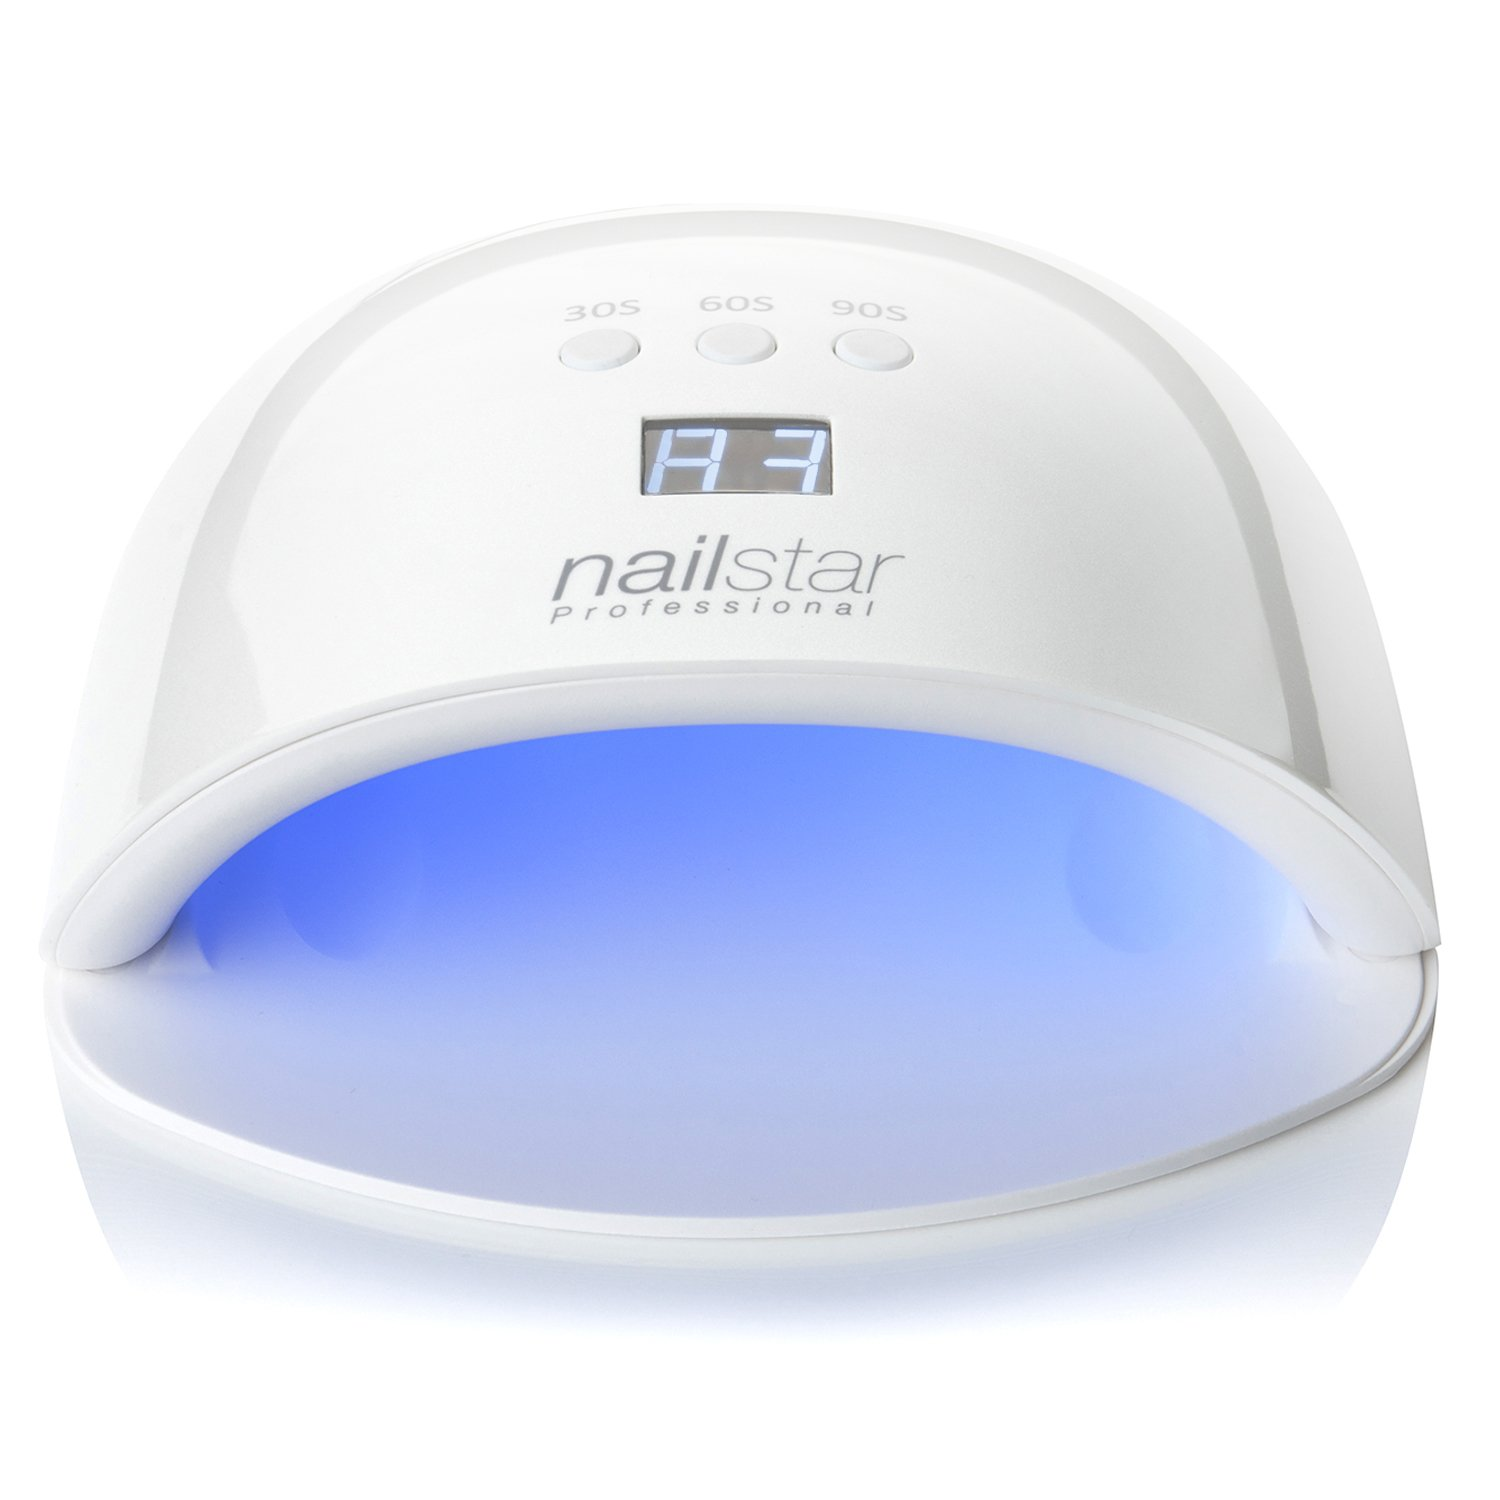 NailStar Professional LED UV Nail Dryer Curing Lamp with LED Display and Timer Countdown